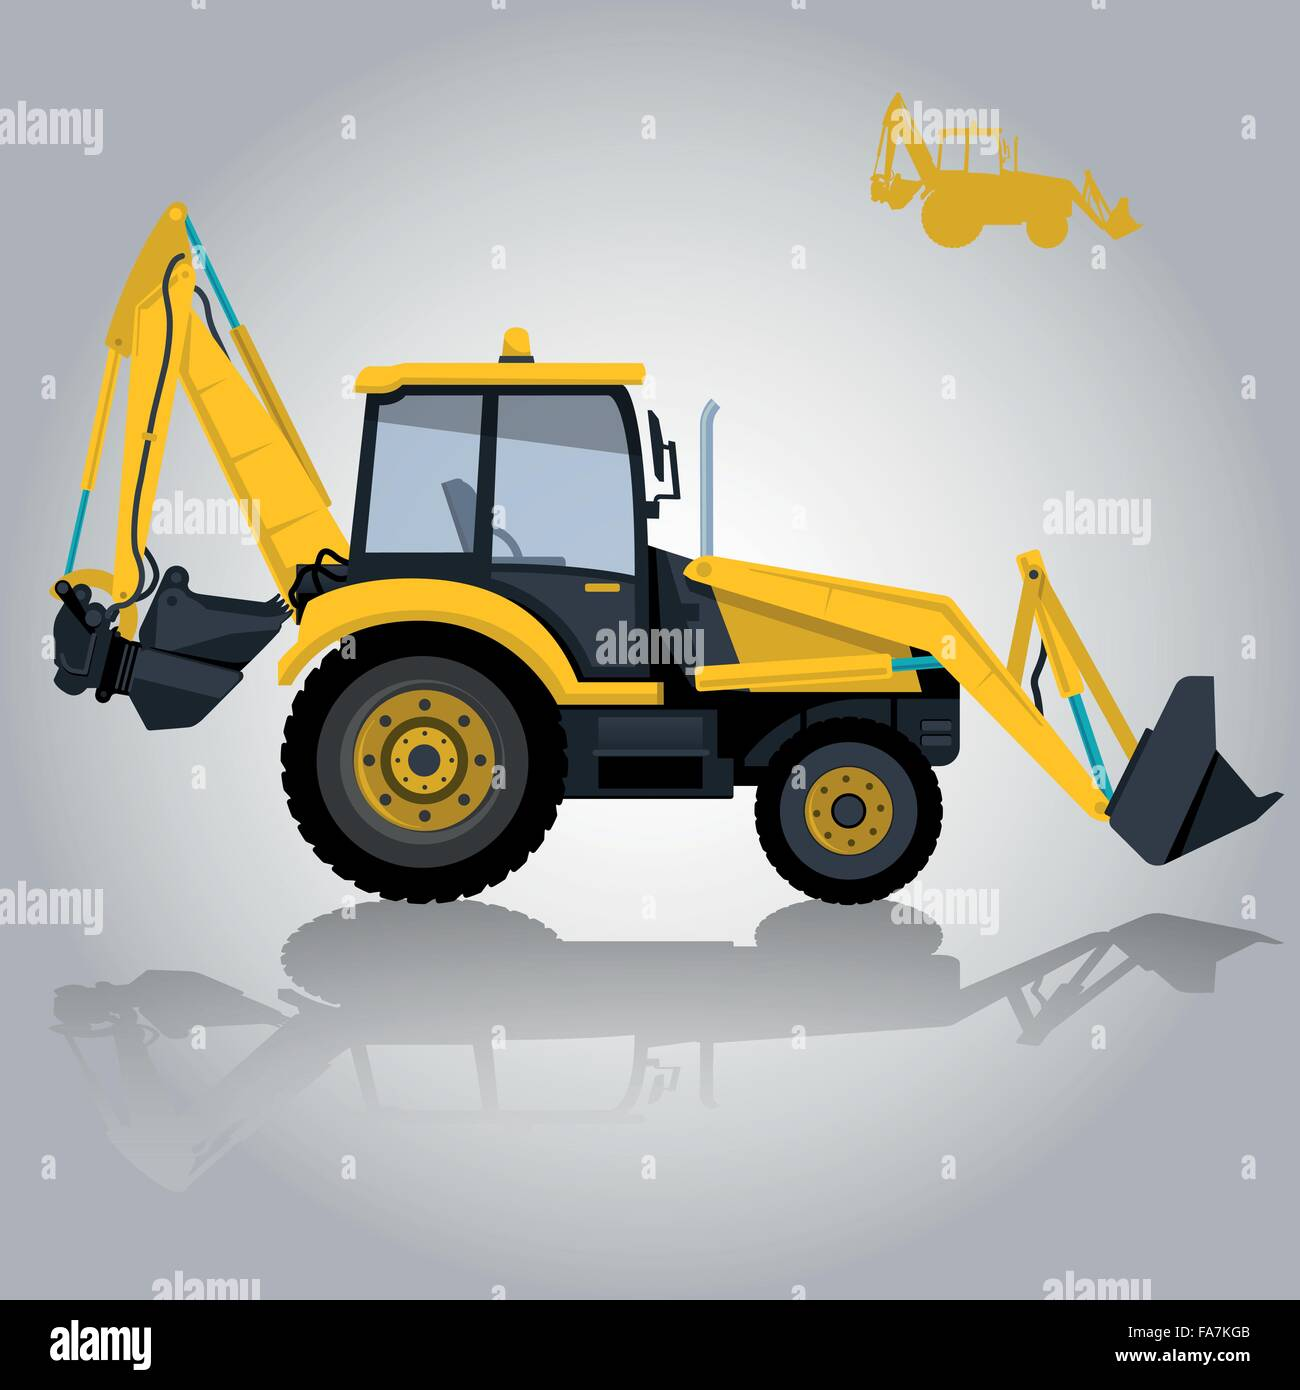 Yellow big digger builds roads. Ground works. Digging vehicle of sand coal rock construction. Illustration flatten - Stock Image